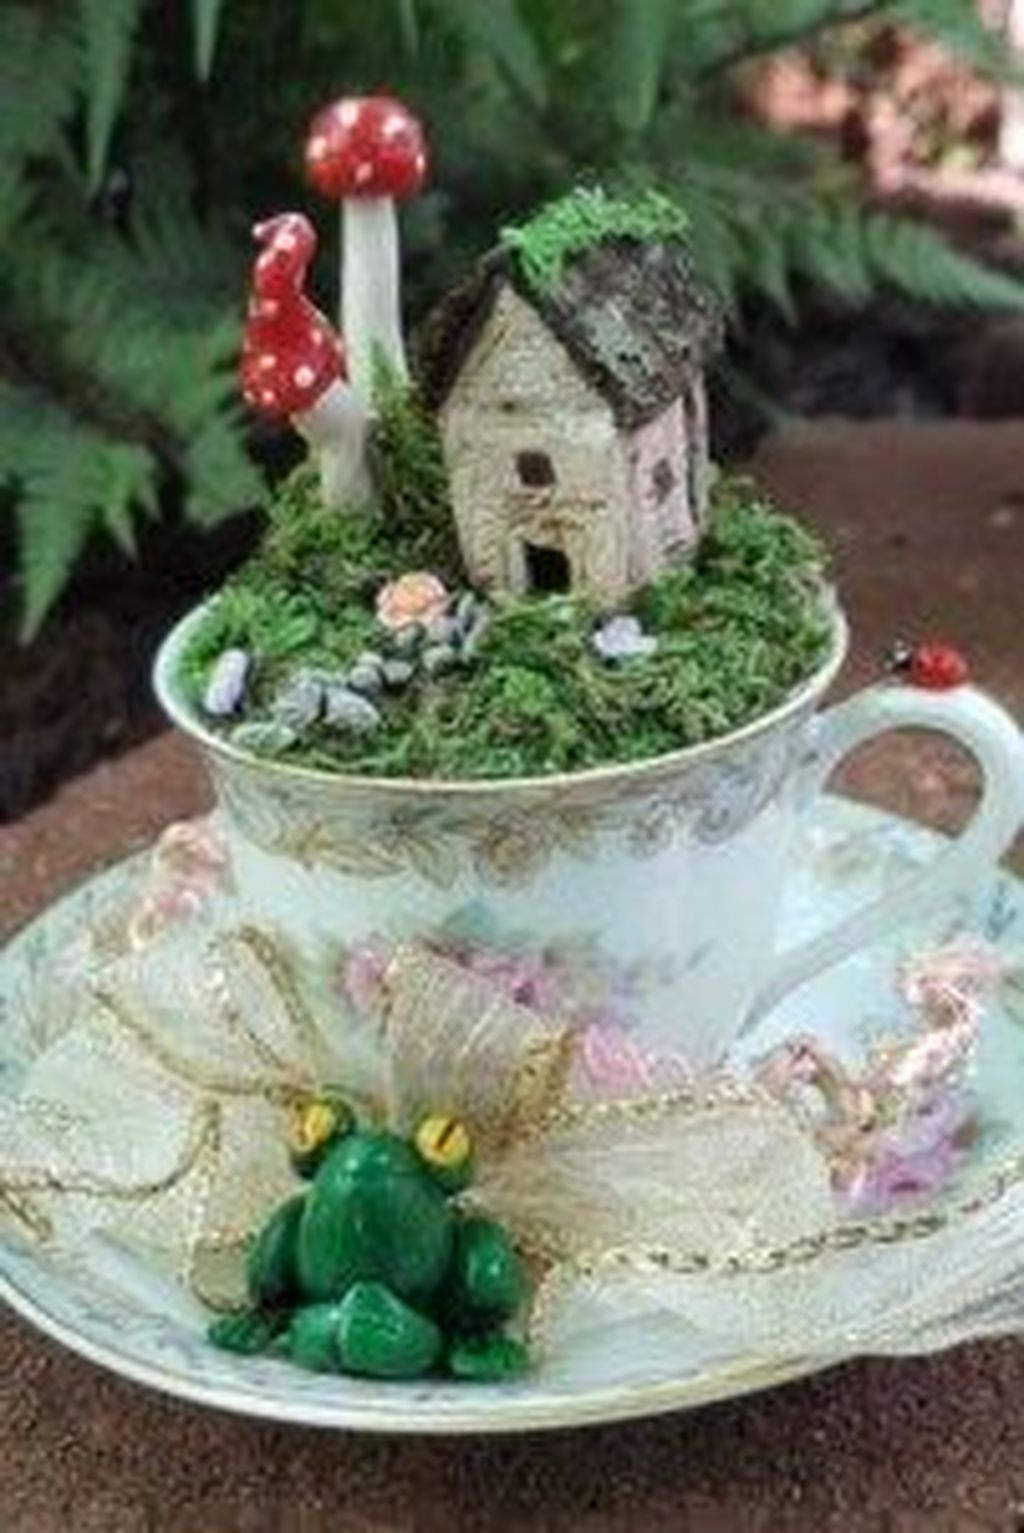 Inspiring Diy Teacup Mini Garden Ideas To Add Bliss To Your Home 10